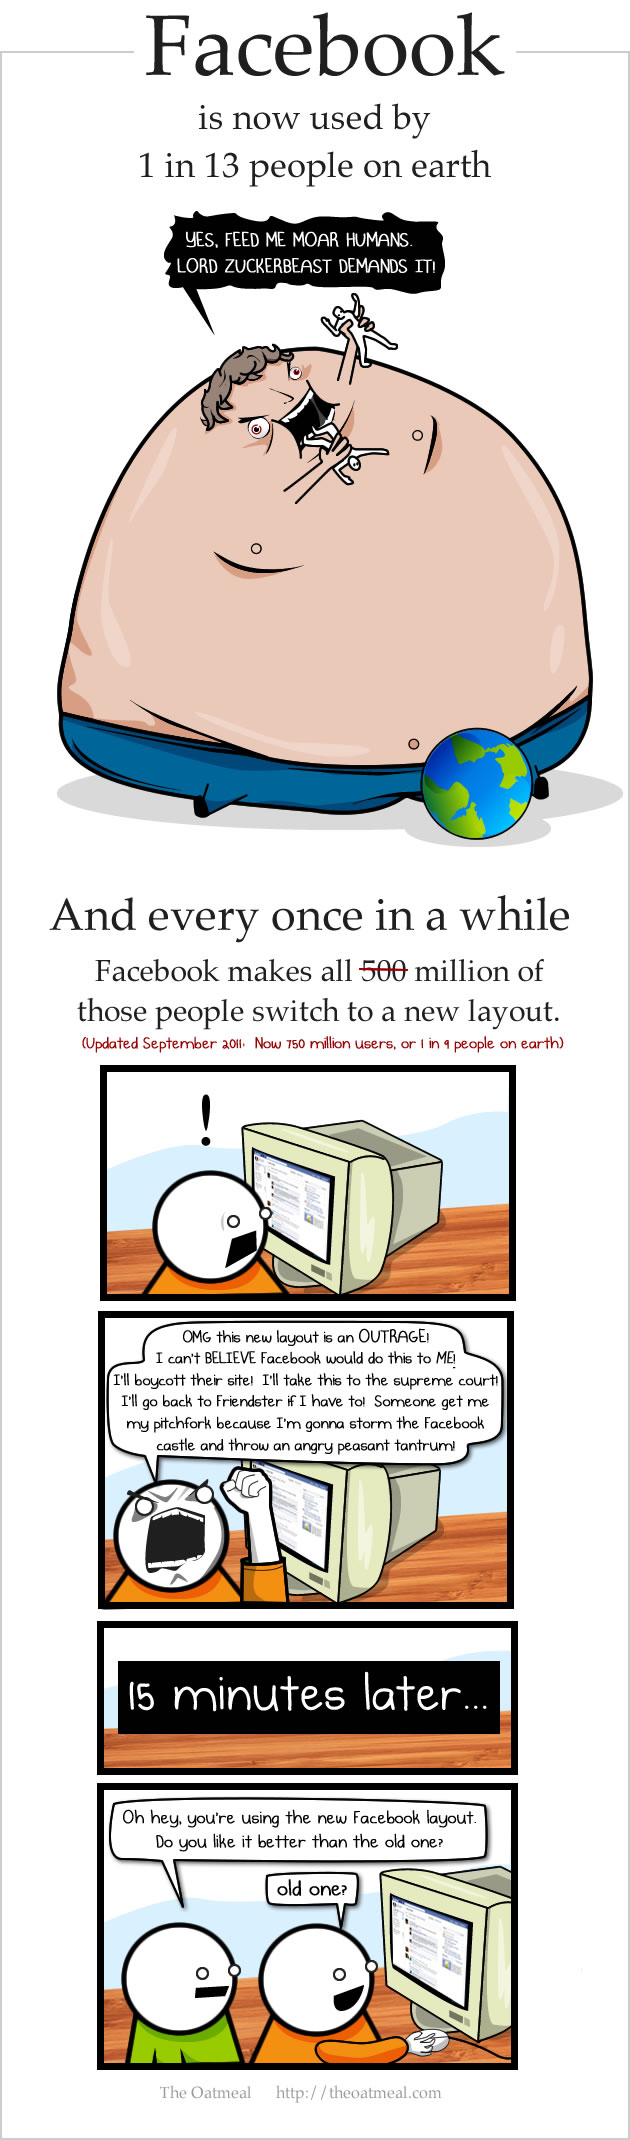 Facebook Changes - By the Oatmeal